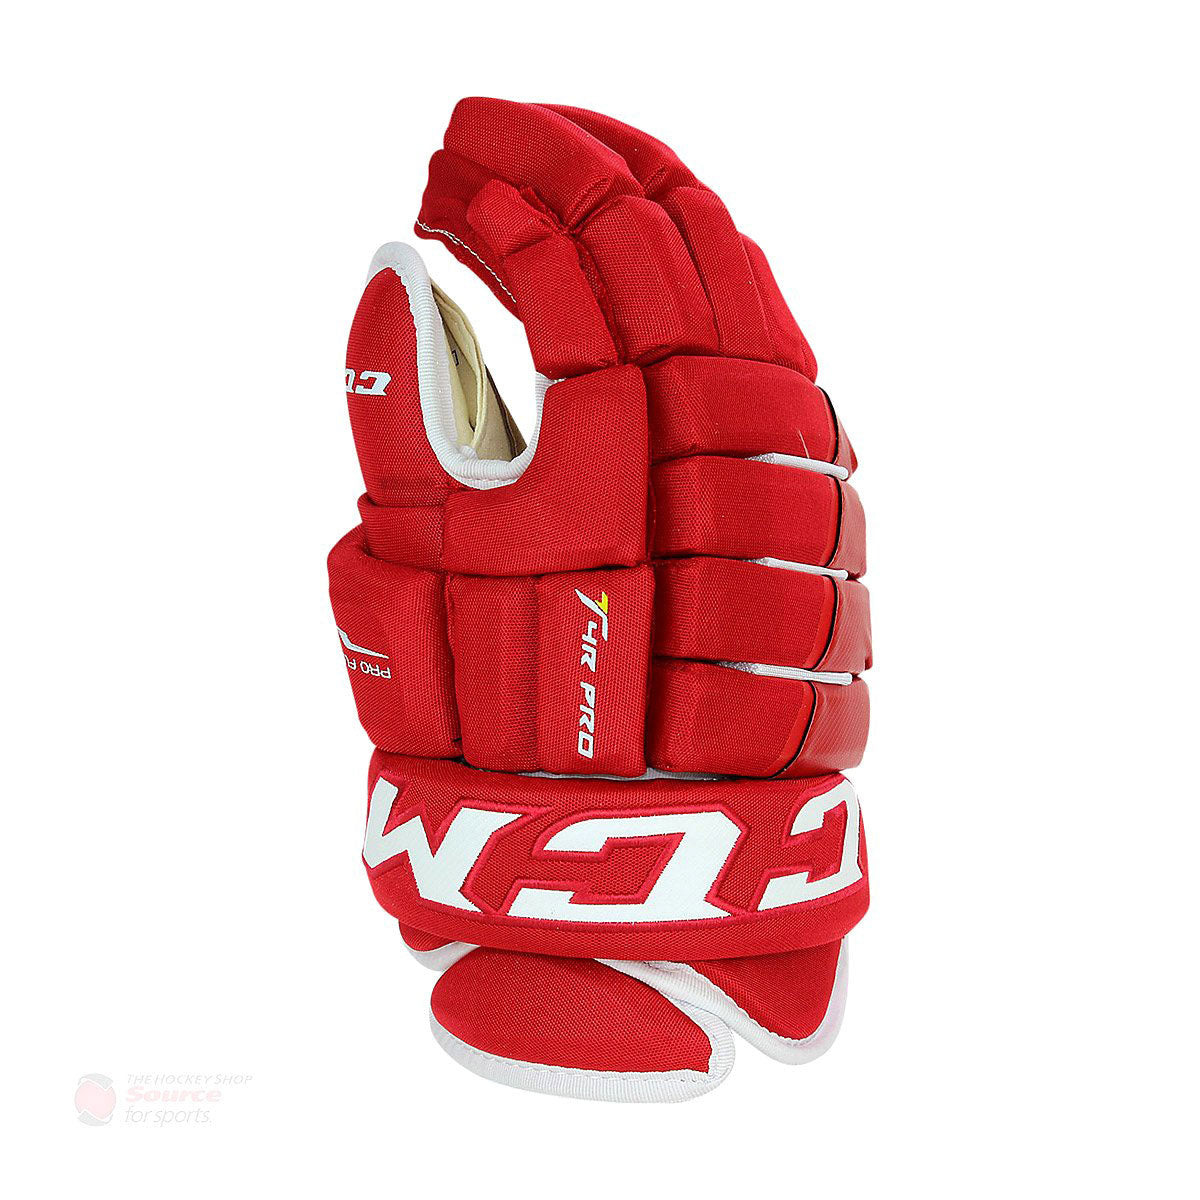 7457926b64a CCM Tacks 4R Pro Senior Gloves – The Hockey Shop Source For Sports